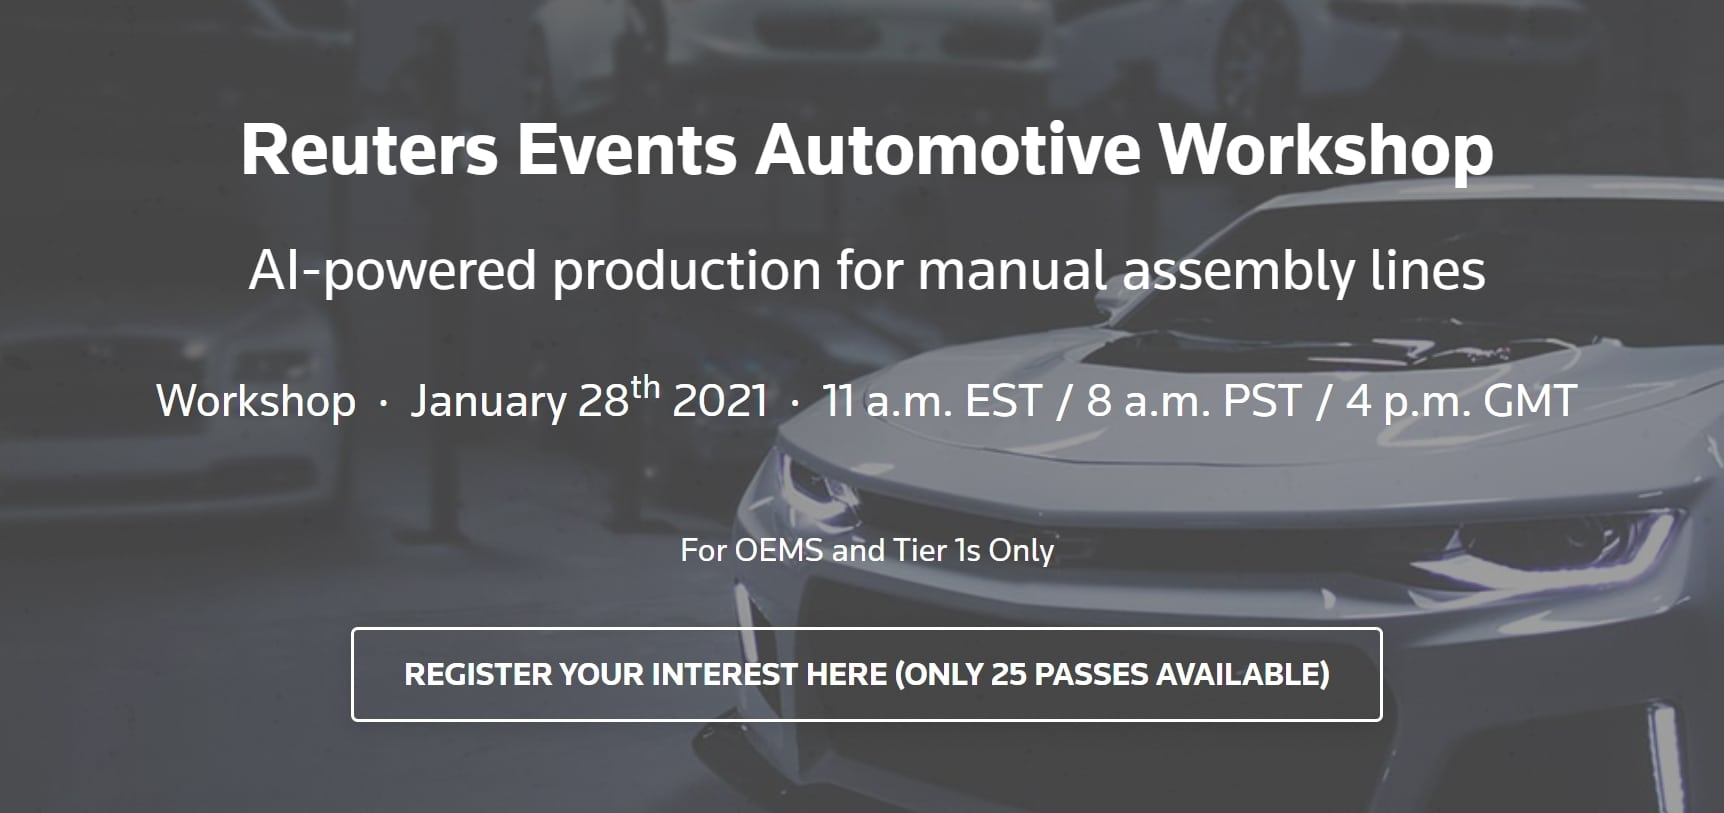 Reuters Events Automotive Workshop